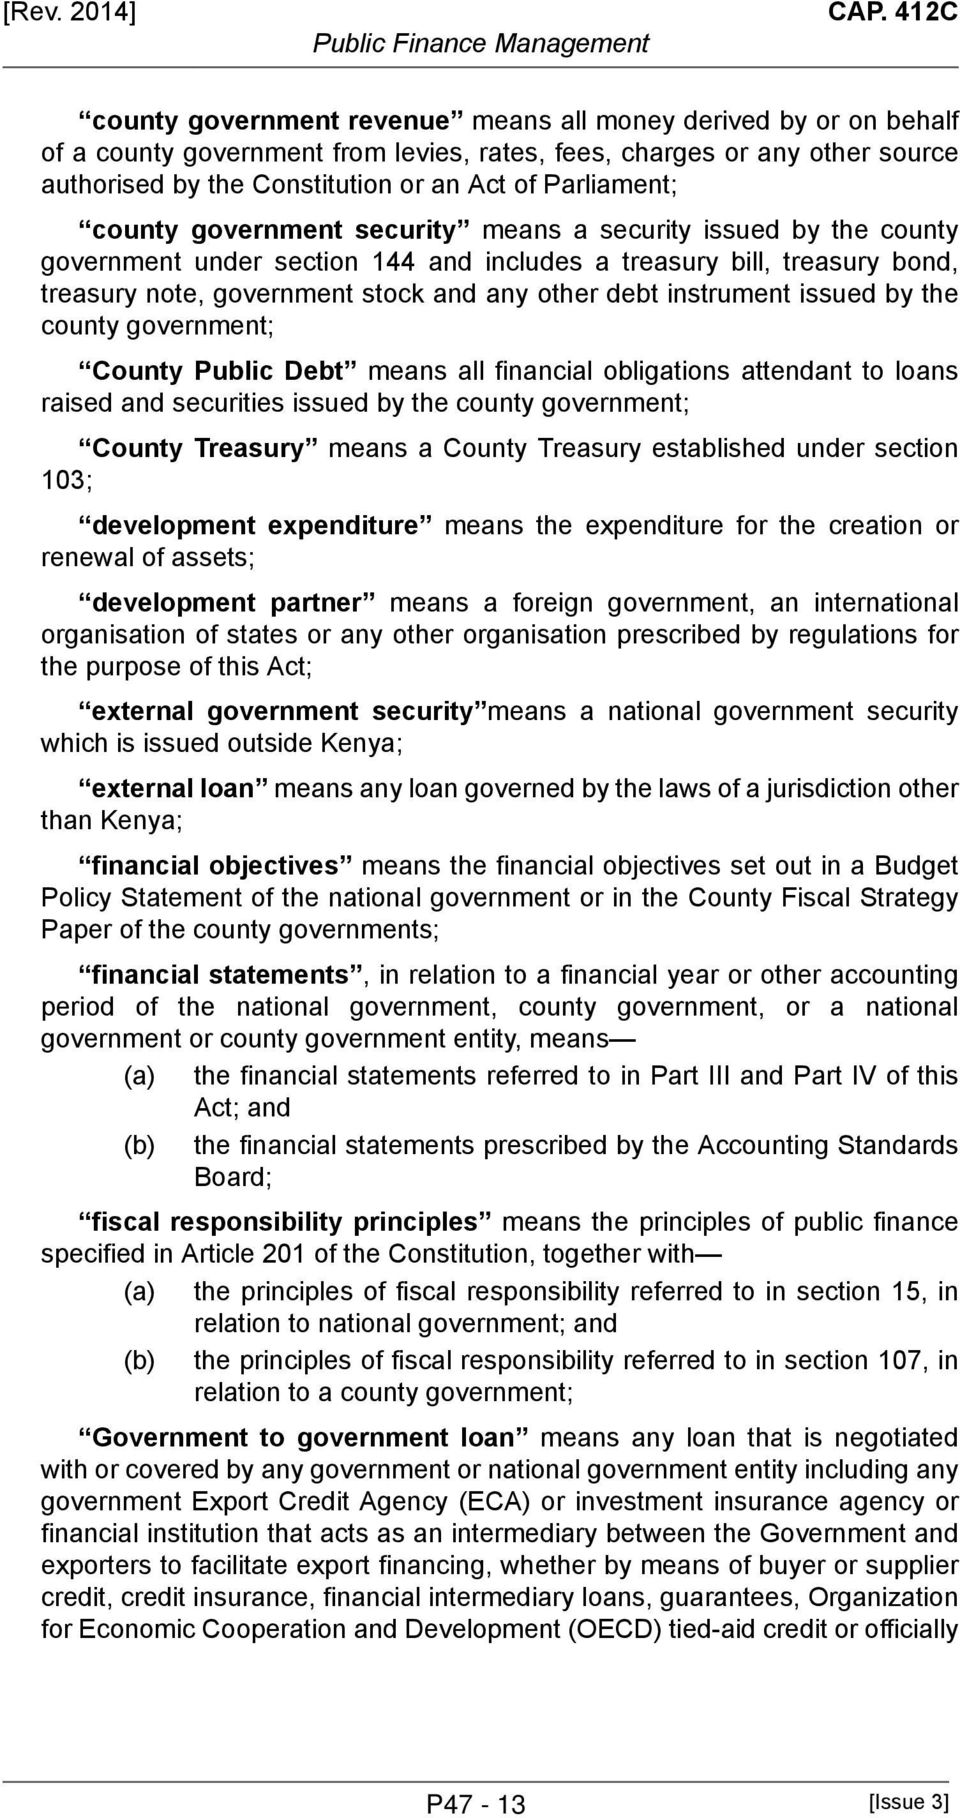 Parliament; county government security means a security issued by the county government under section 144 and includes a treasury bill, treasury bond, treasury note, government stock and any other